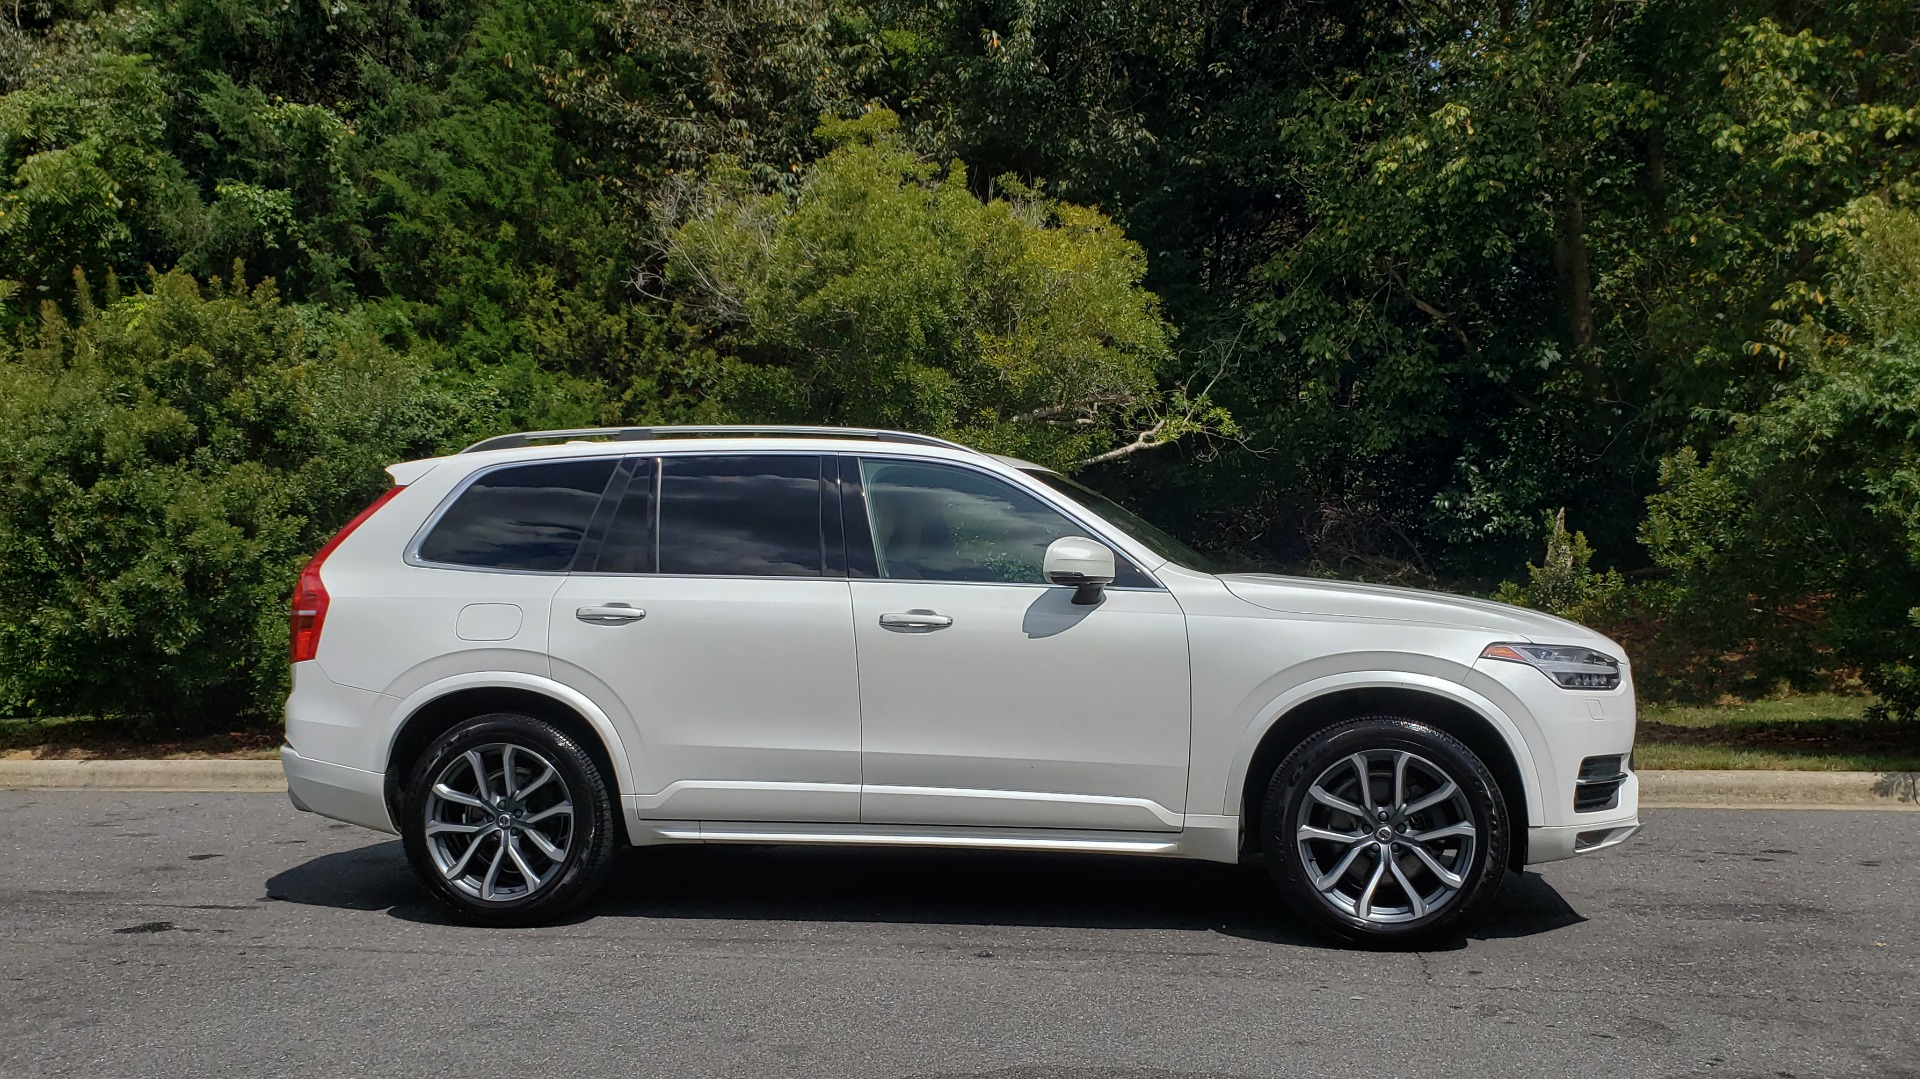 Used 2017 Volvo XC90 MOMENTUM PLUS T6 AWD / NAV / VISION / PROTECTION PKG for sale $34,995 at Formula Imports in Charlotte NC 28227 4